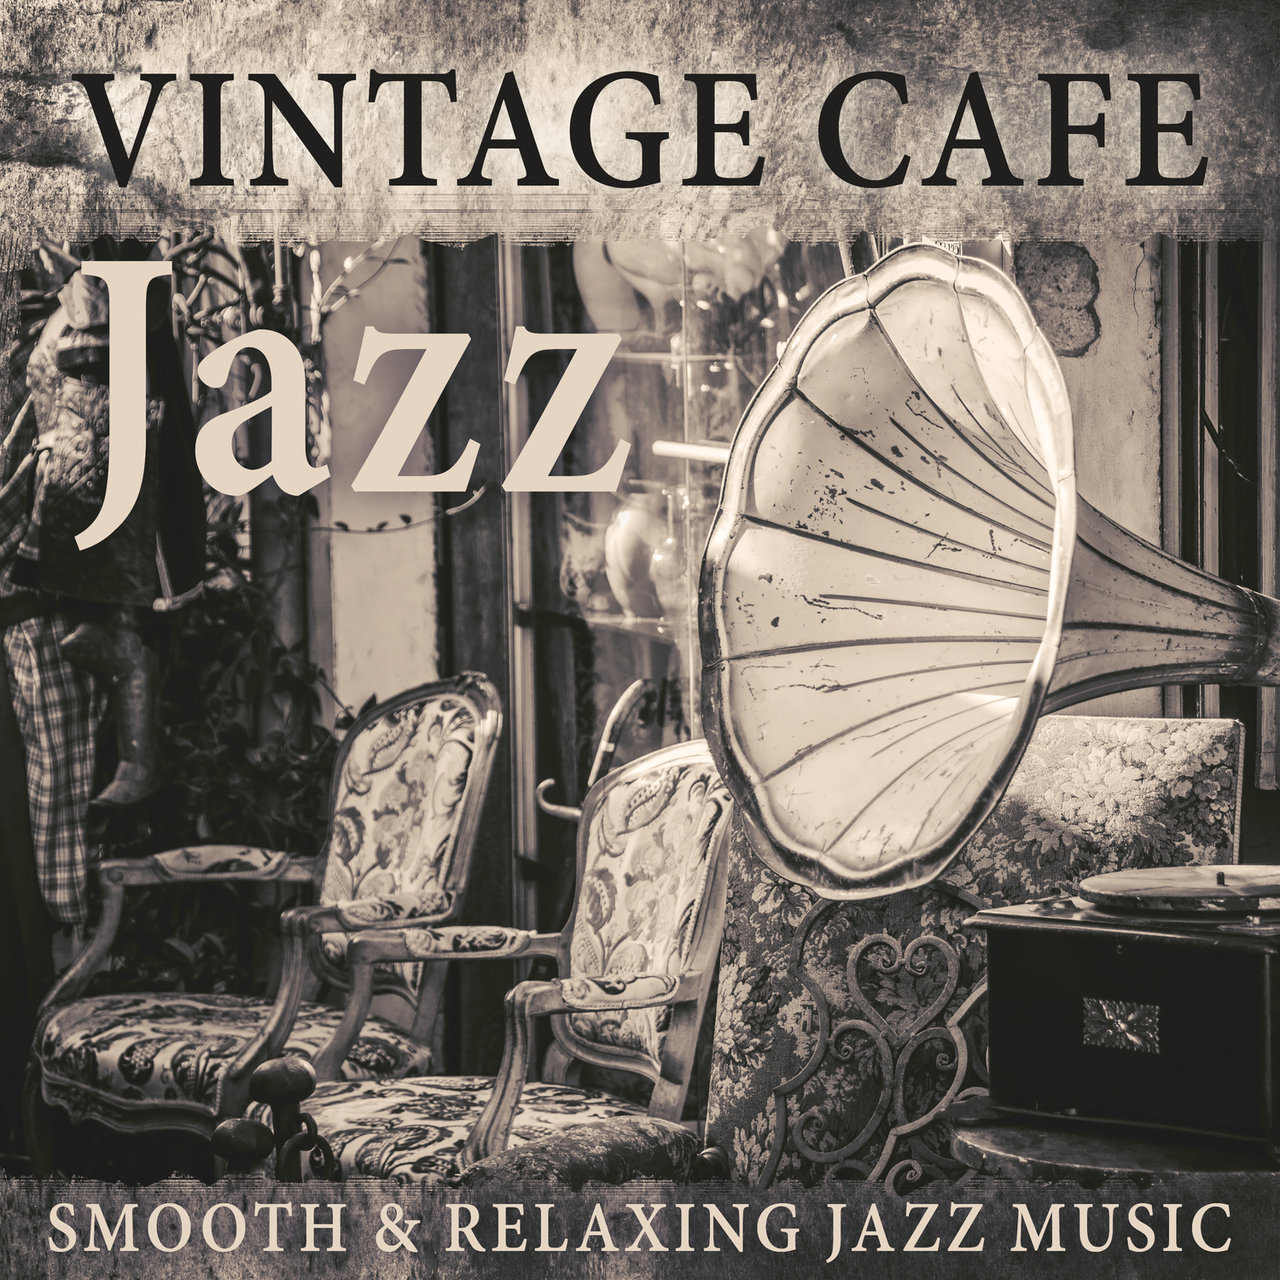 Vintage Café Listen To Vintage Cafe Jazz Smooth Relaxing Jazz Music